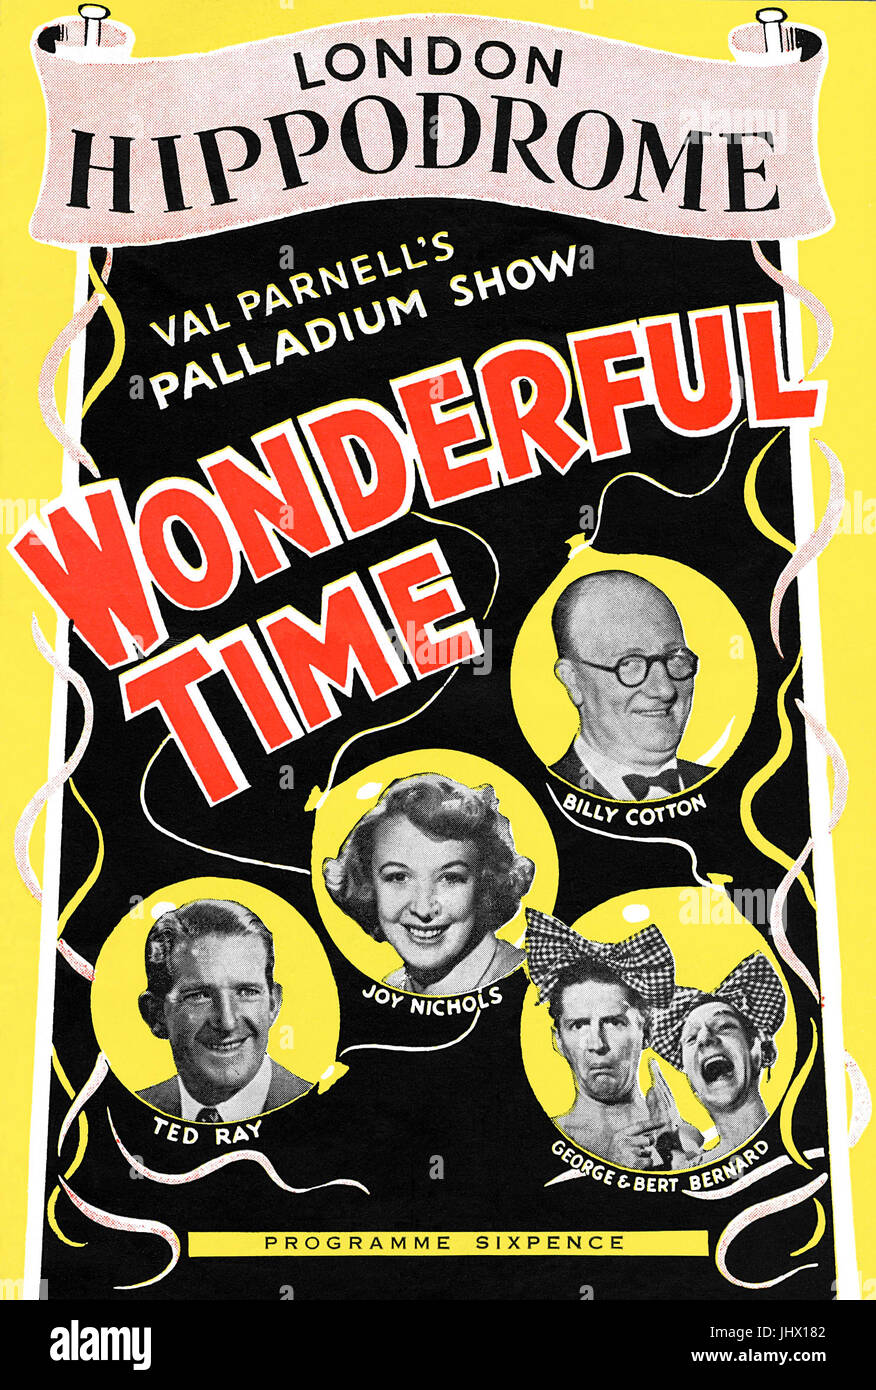 Front cover of a programme from the London Hippodrome for the variety show Wonderful Time. First performed in 1952. - Stock Image